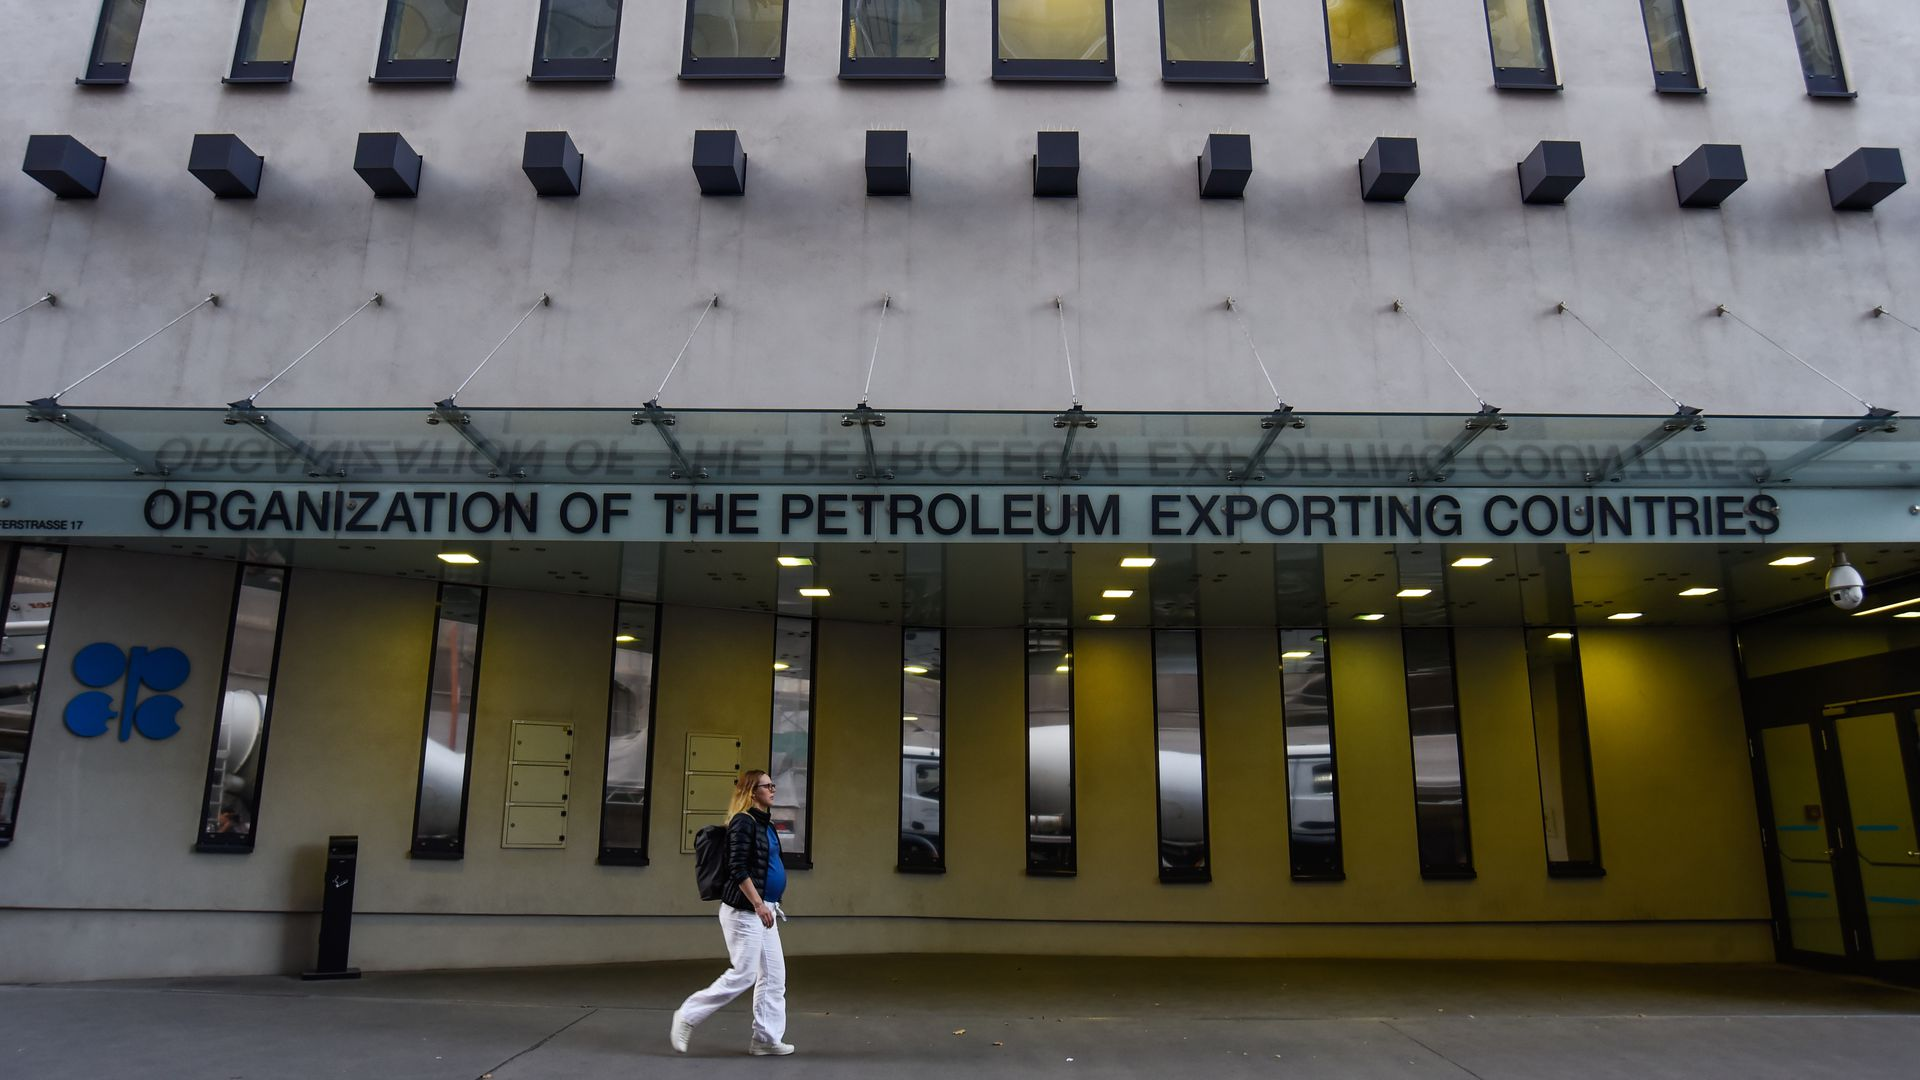 OPEC prevents the bottom from dropping out